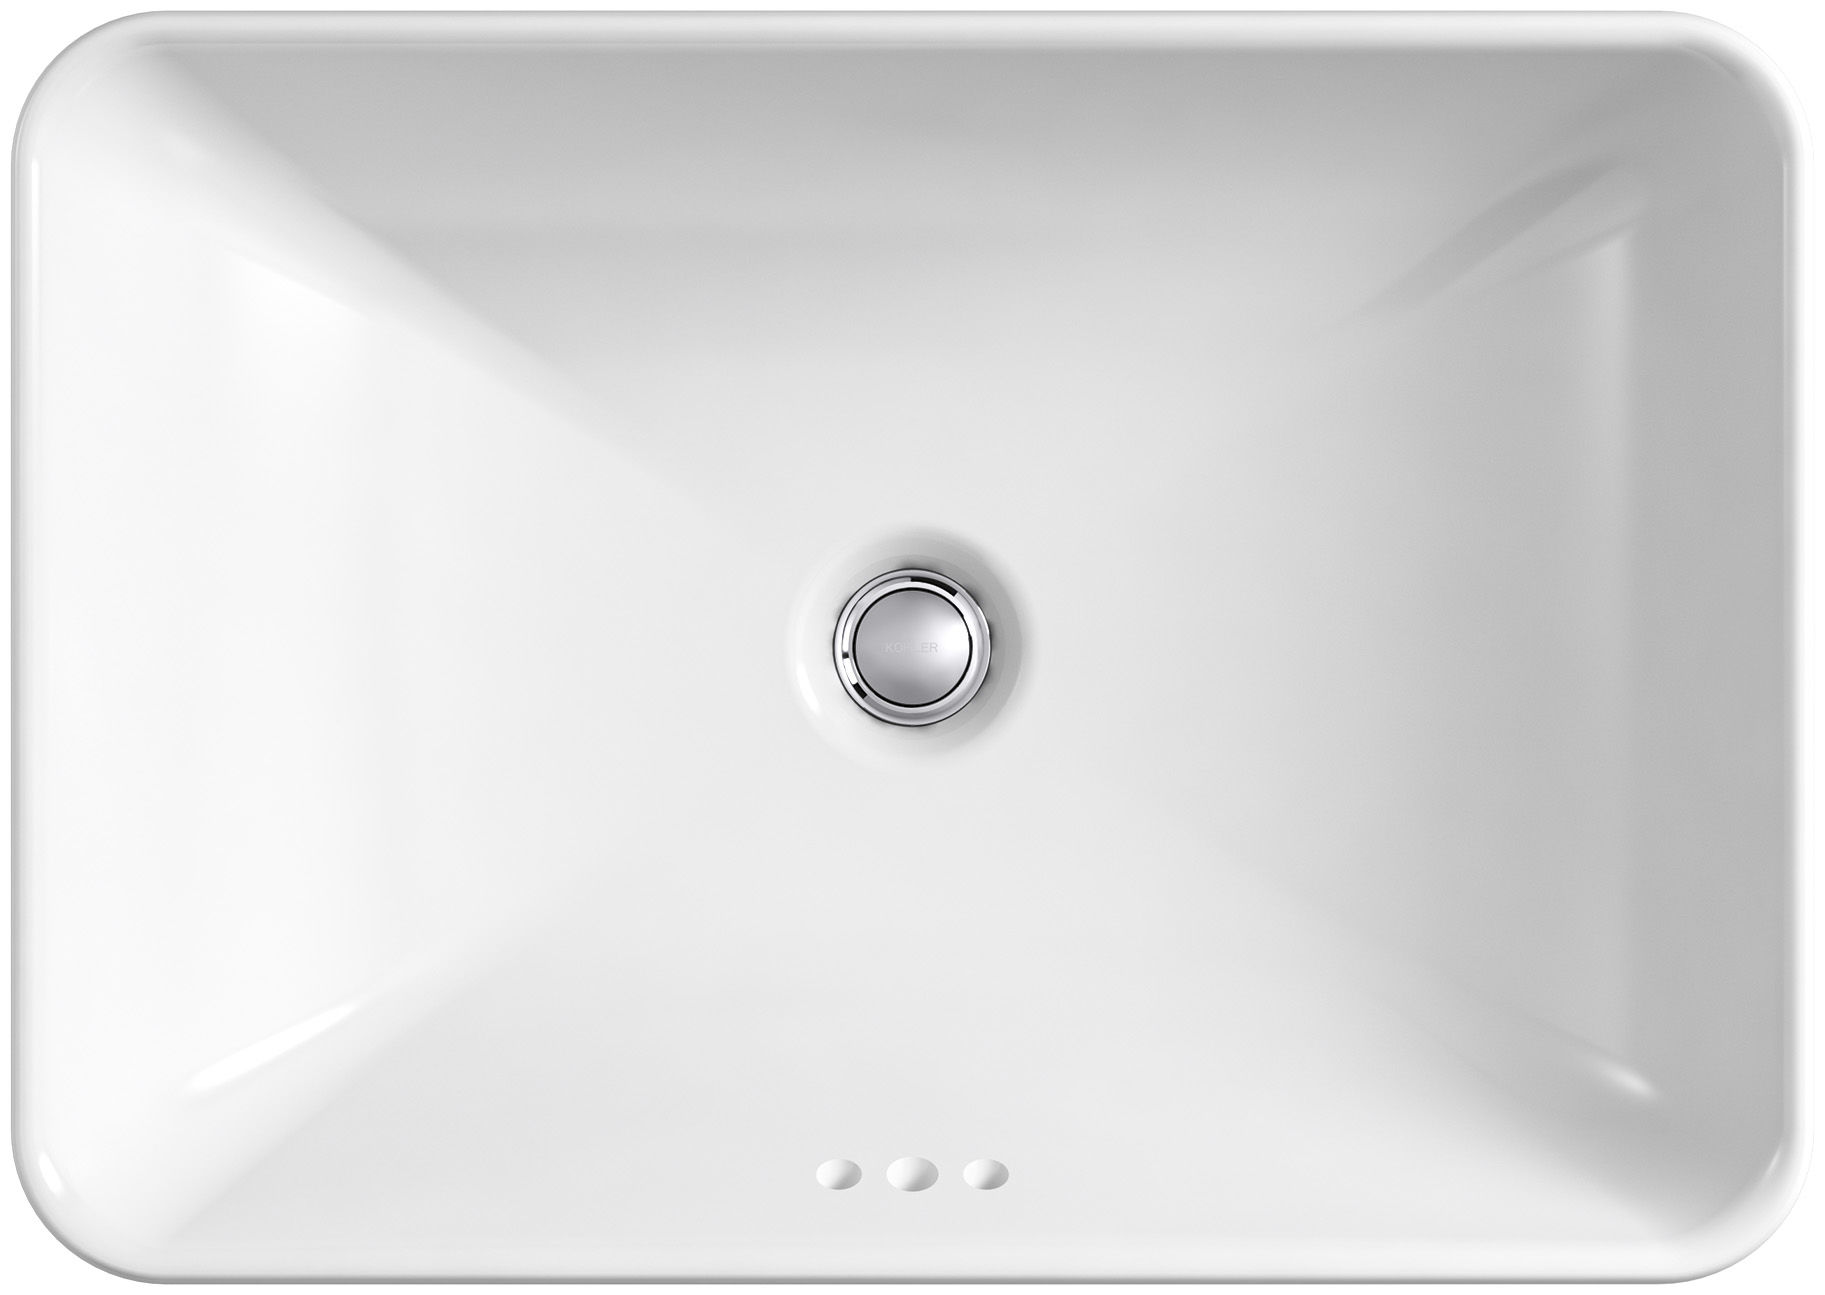 Bathroom Shower Top View - Kohler k 5373 0 white 22 5 8 vox rectangle vessel sink with overflow faucet com